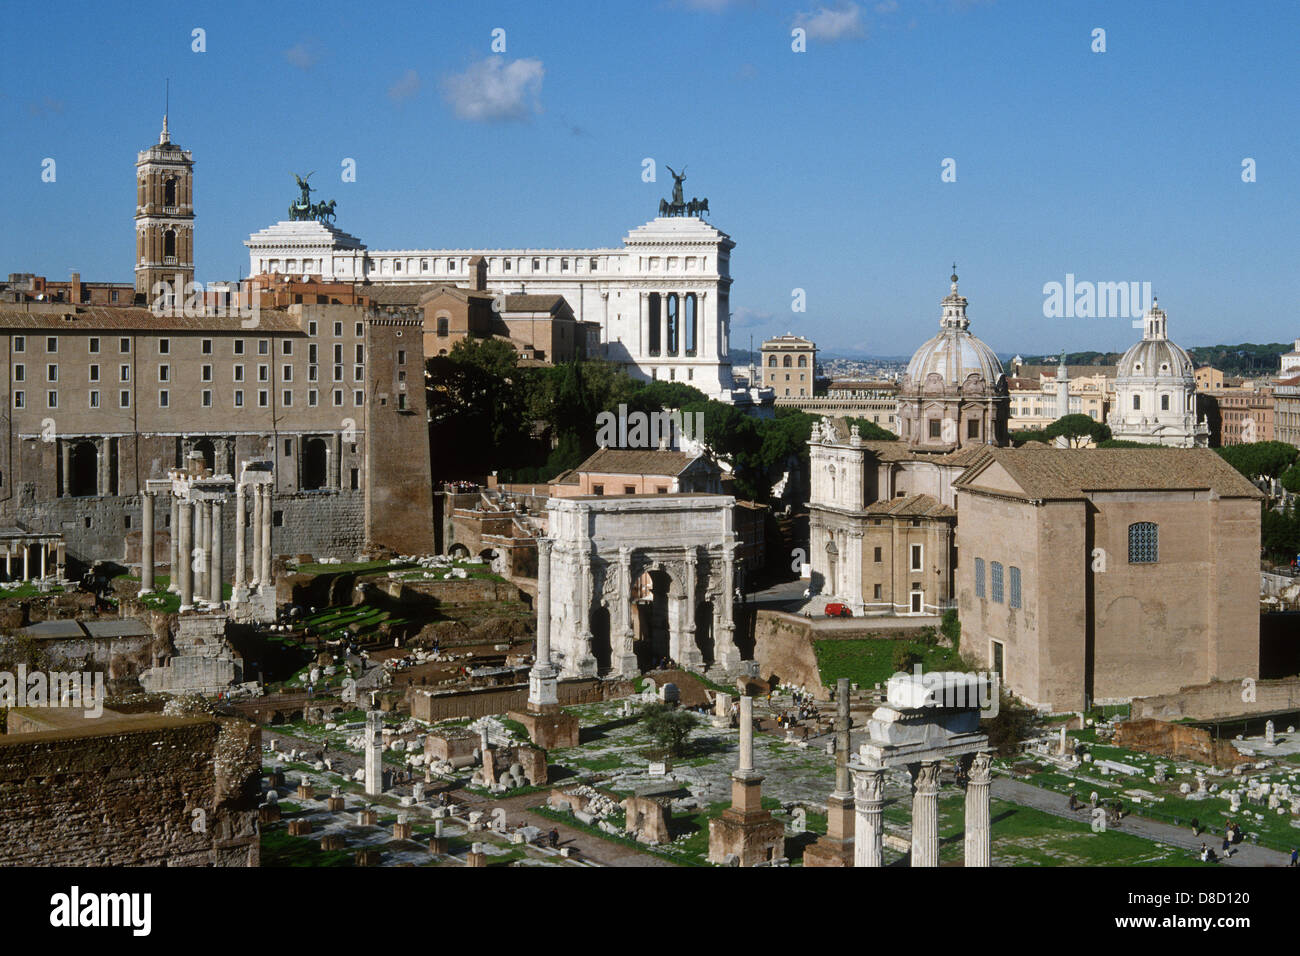 Rome. Italy. The Roman Forum (Foro Romano) with the Capitol and Victor Emmanuel Monument in the background. - Stock Image